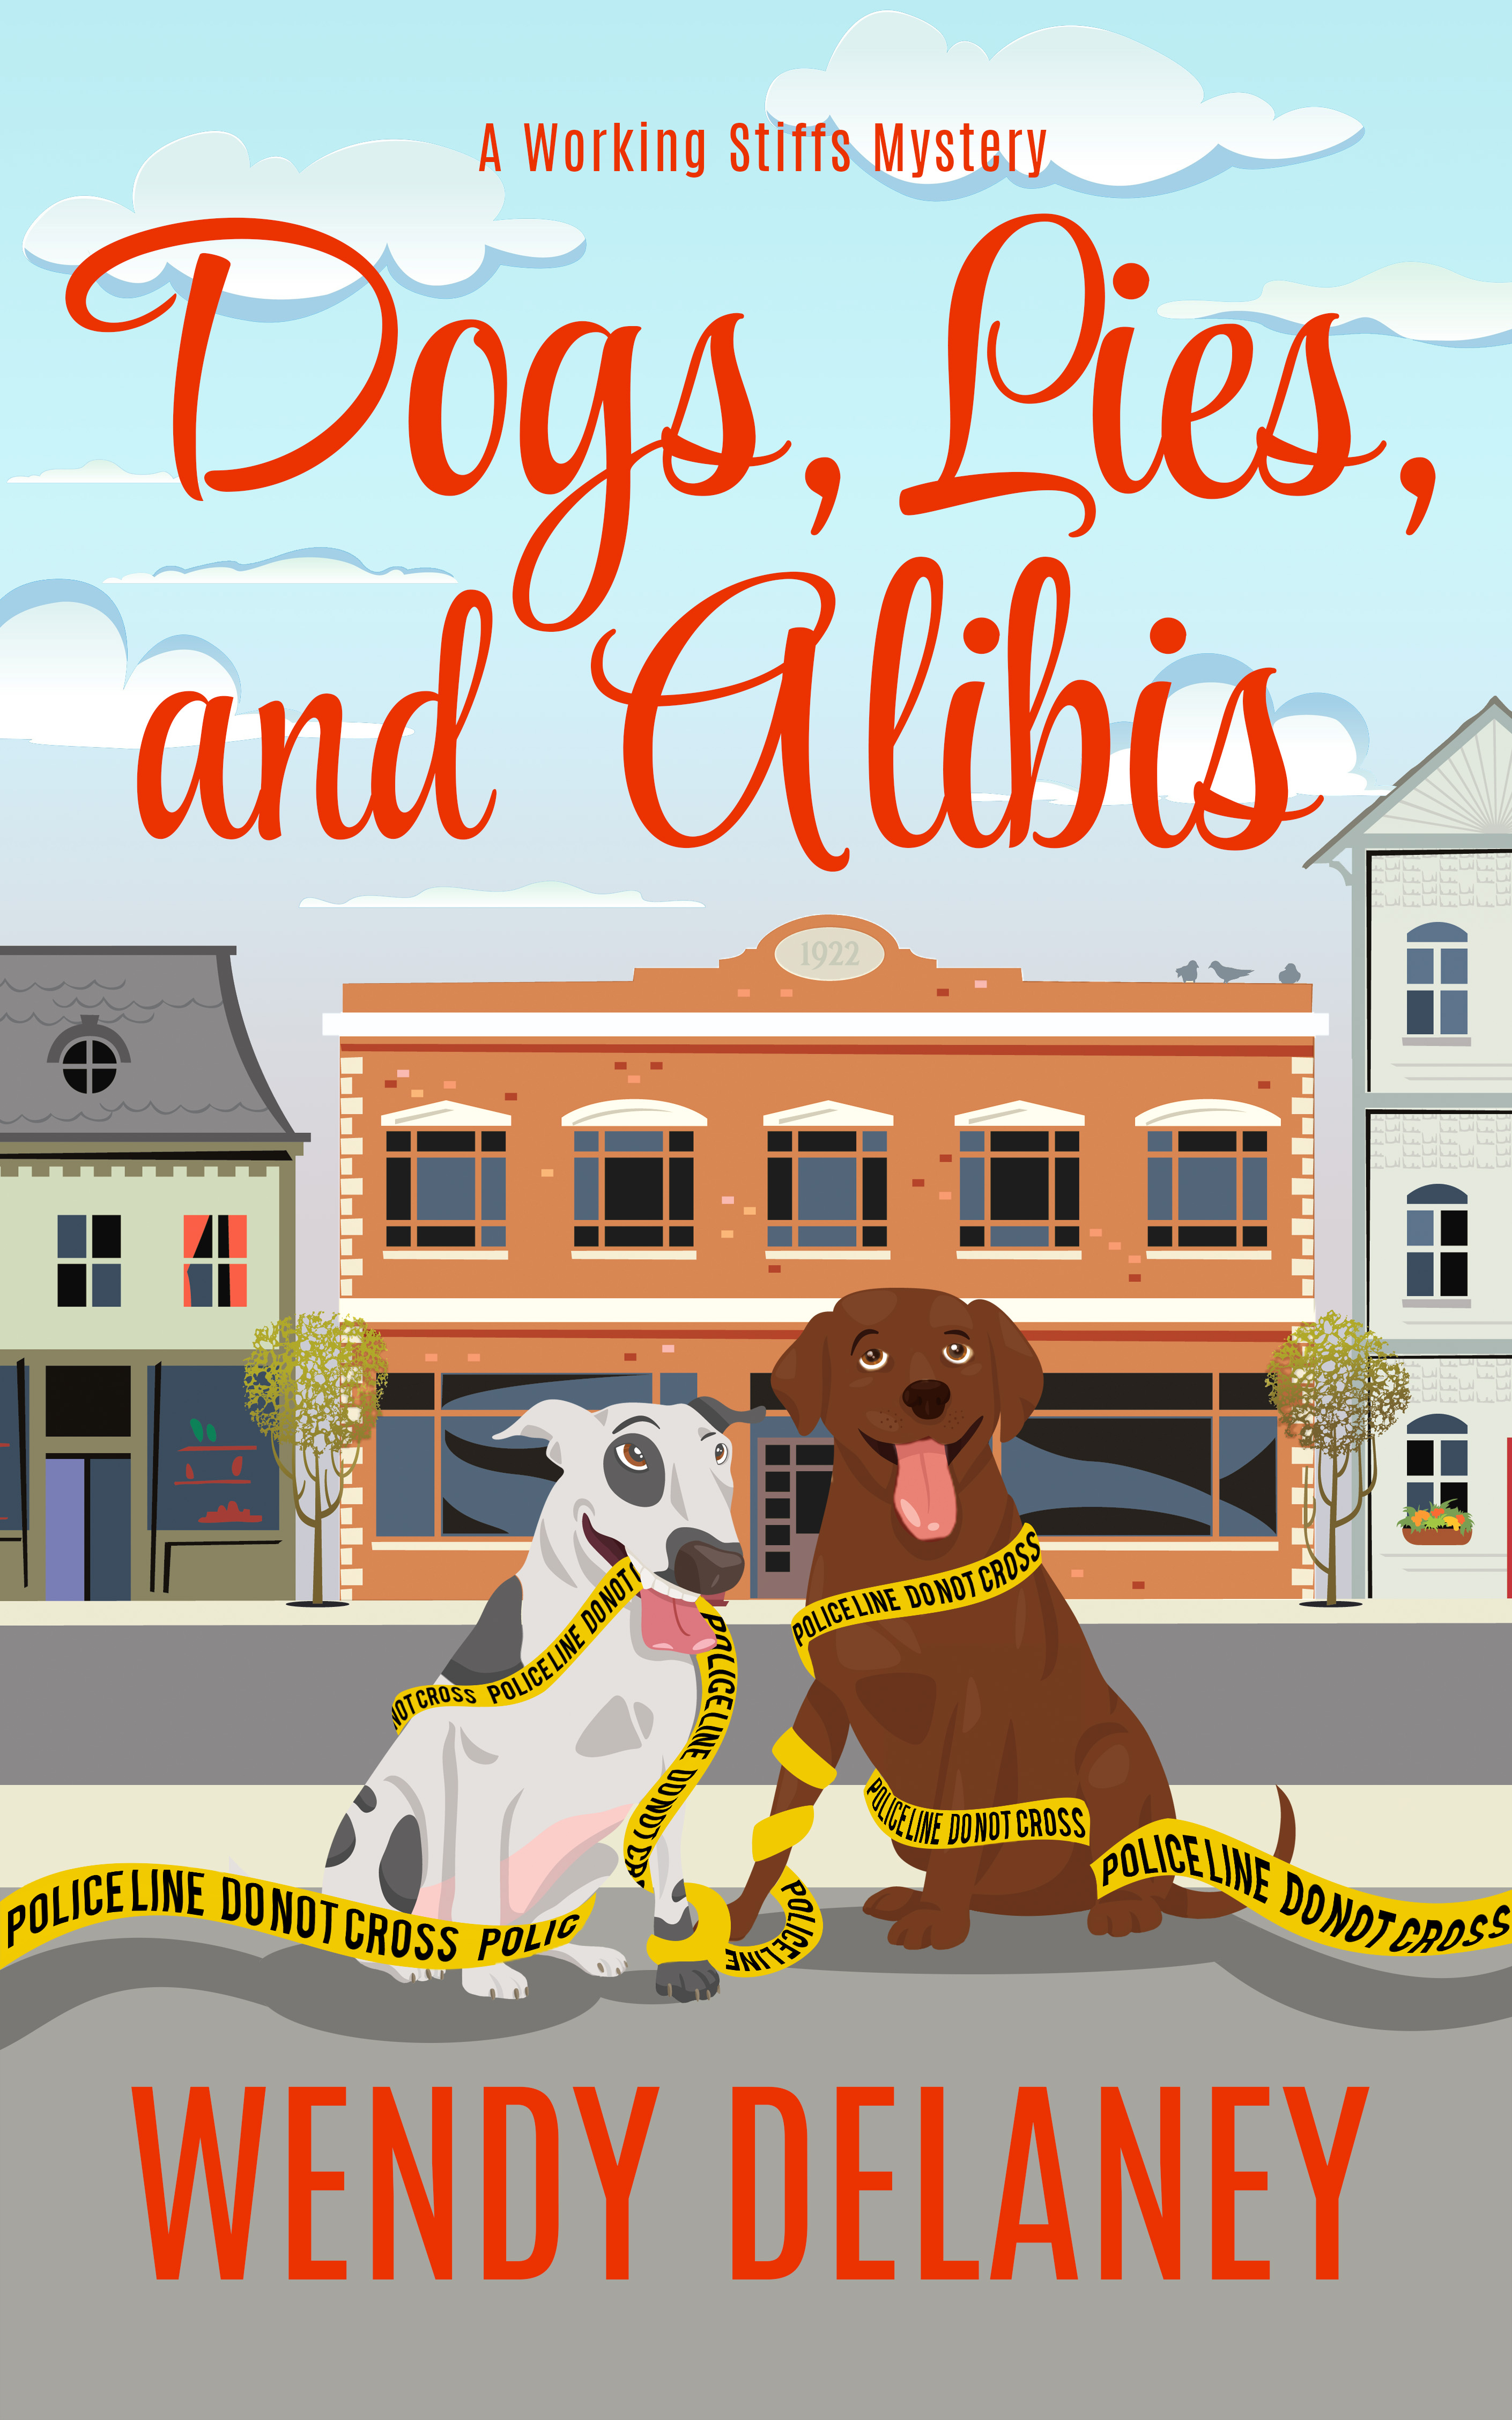 Dogs, Lies, and Alibis final